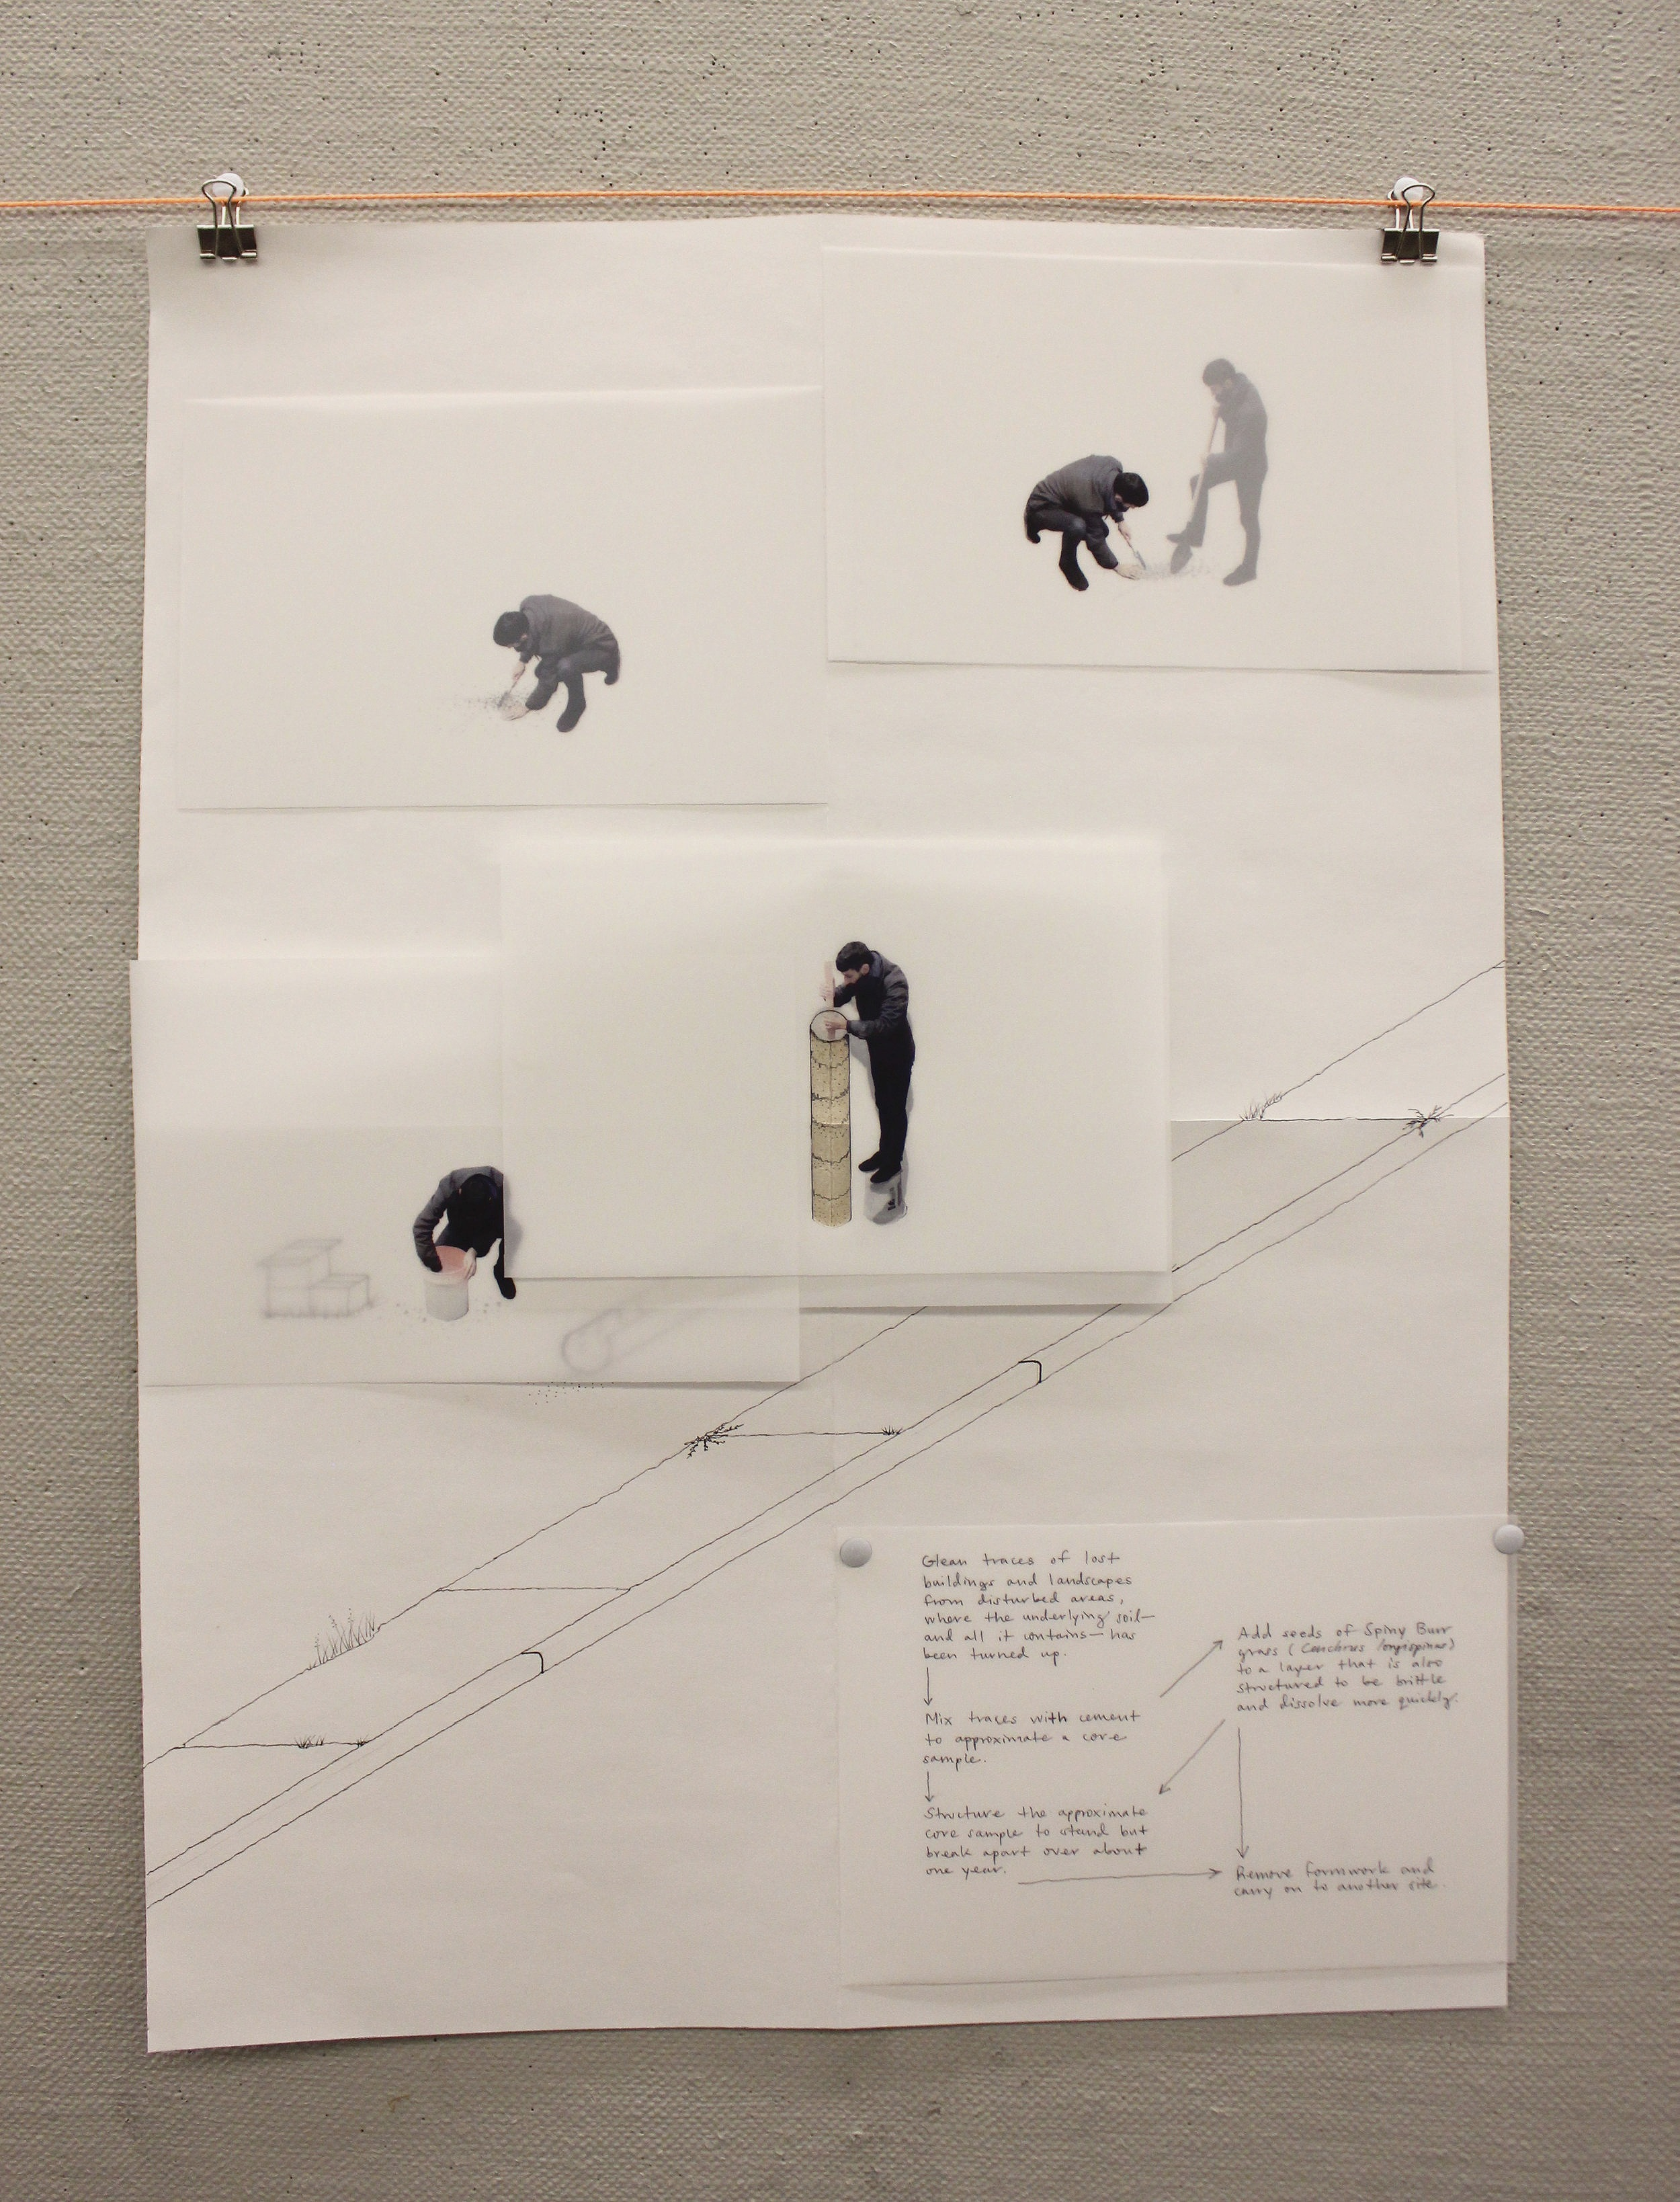 Pen and soil on paper, xerox print on mylar.  A self-portrait axonometric drawing demonstrates the technique on constructing an  Approximate Core  onsite, out of the site itself.